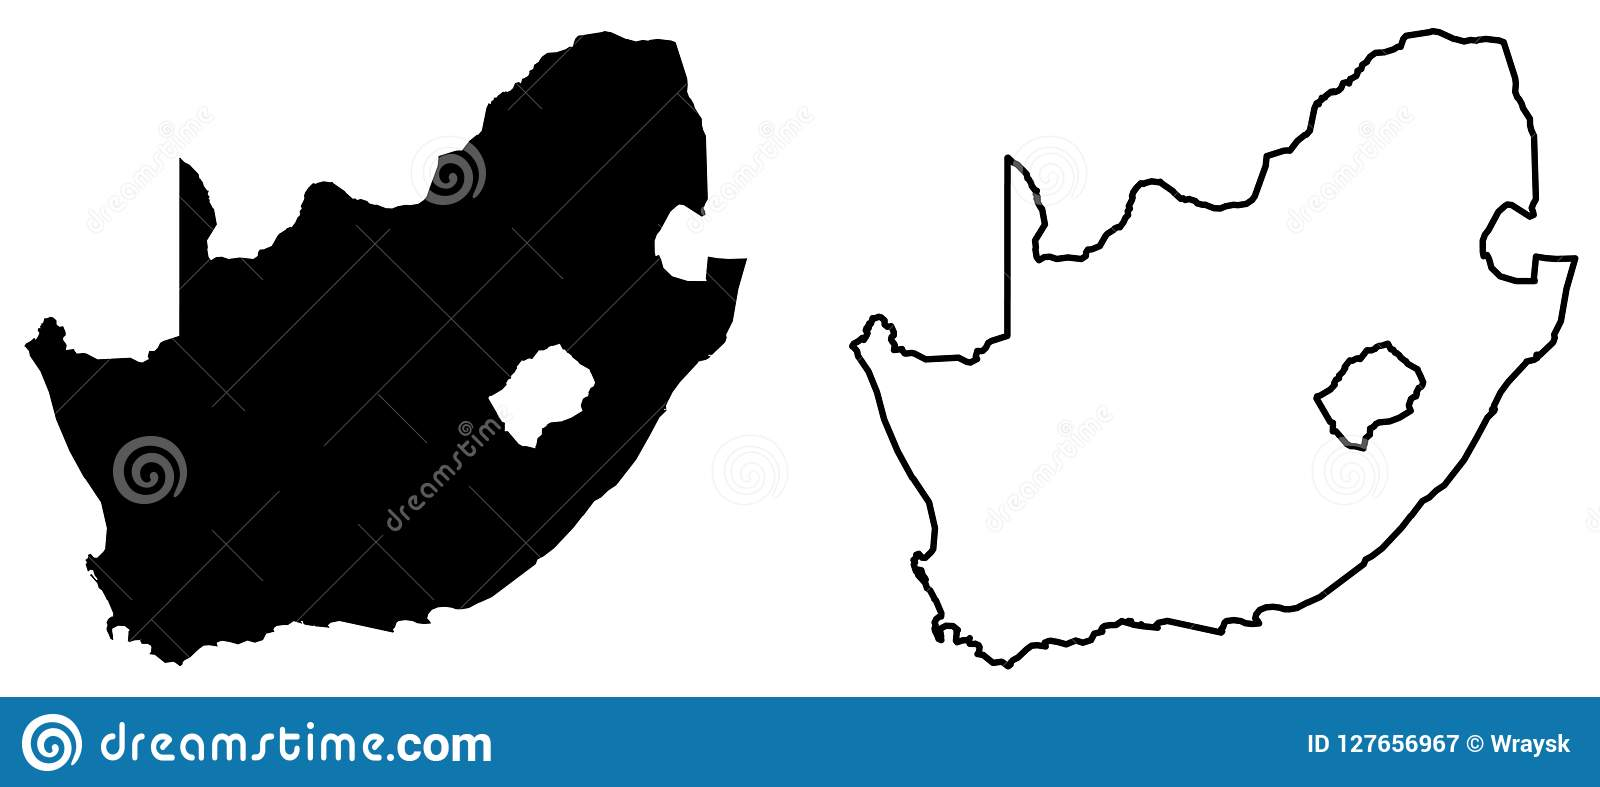 Simple Only Sharp Corners Map Of South Africa Vector Drawing Stock